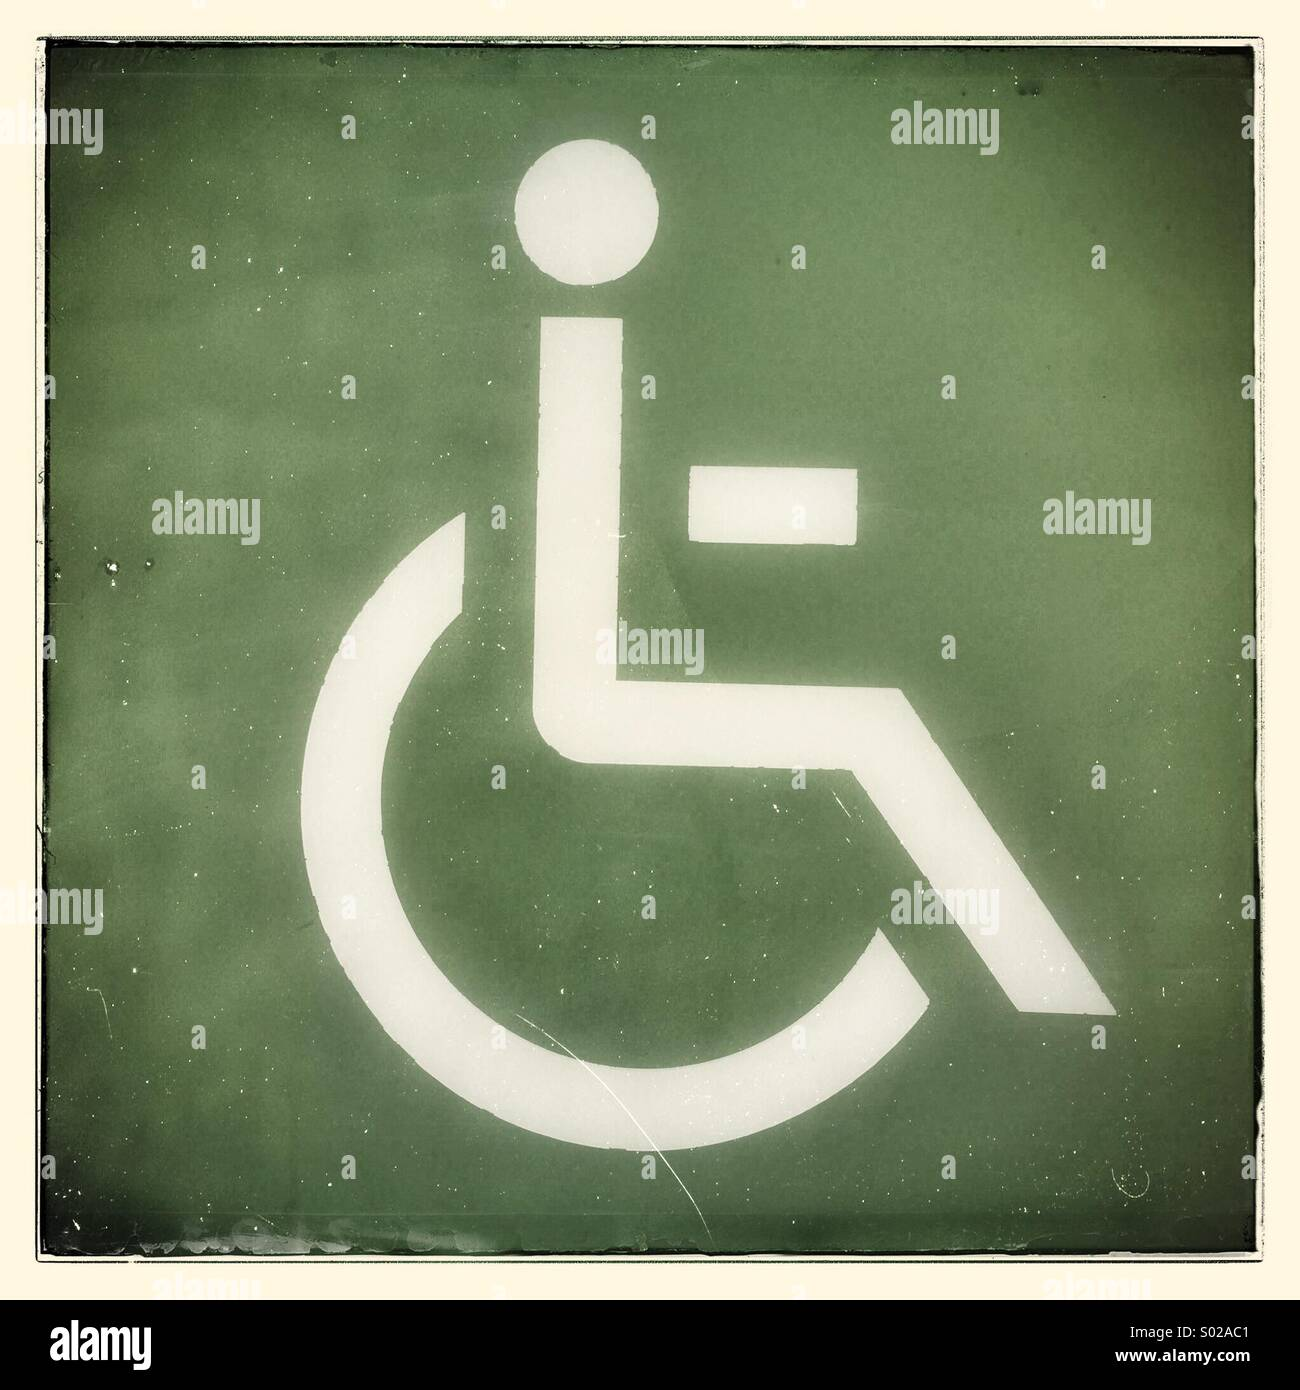 Disabled facility symbol - Stock Image